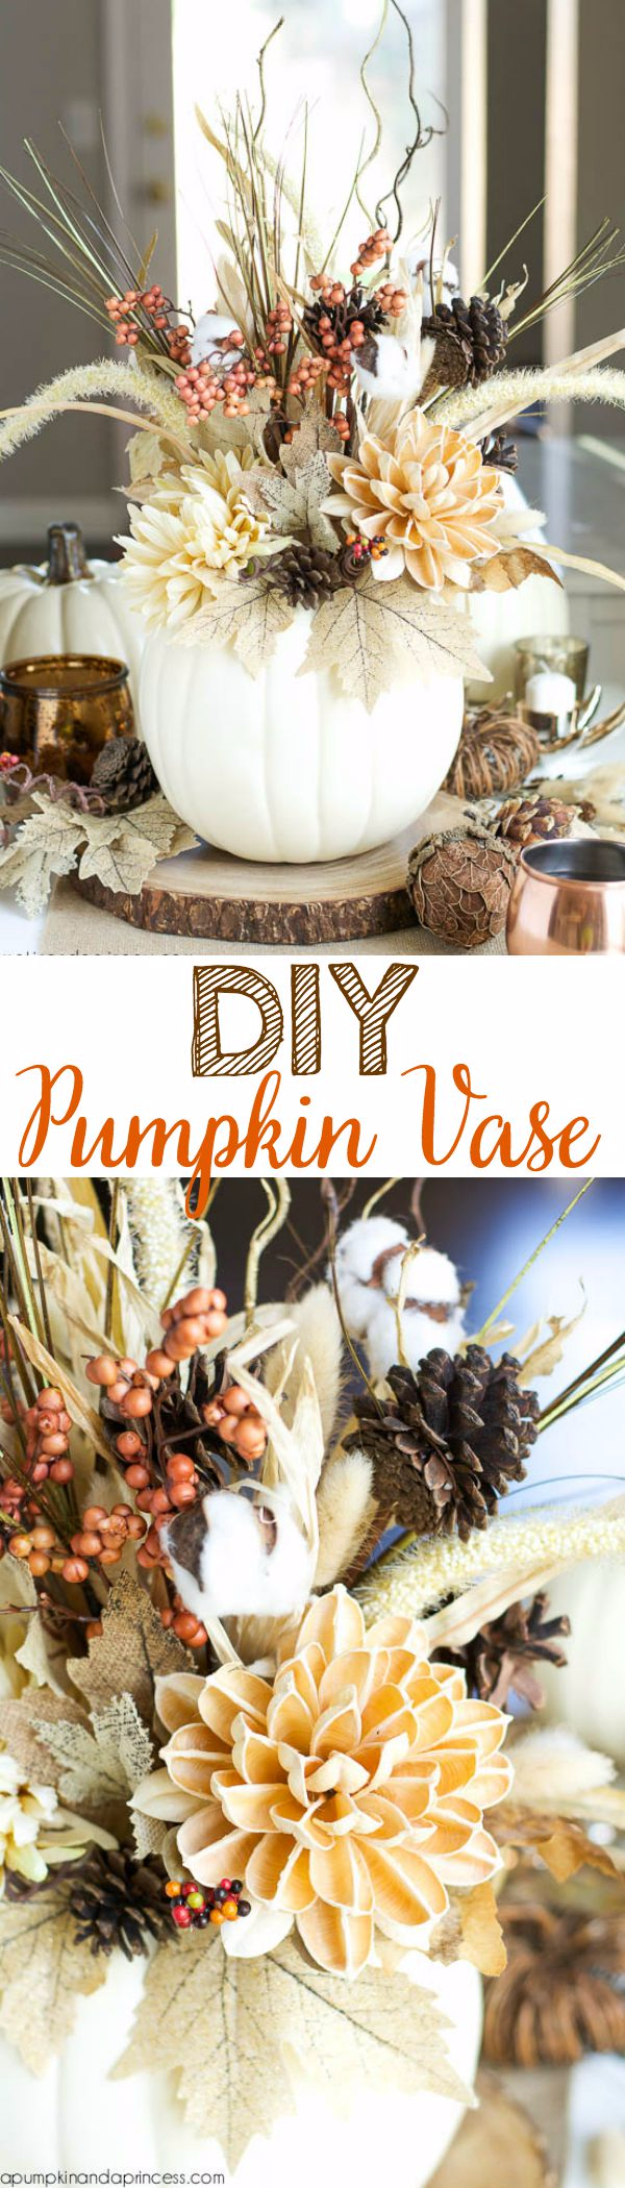 34 Pumpkin Decorations For Fall - DIY Pumpkin Vase - Easy DIY Pumpkin Decor Ideas for Home, Yard, Outdoors - Cool Pumpkin Decorating Ideas for Adults and Kids Party, Creative Crafts With Paint, Glitter and No Carve Projects for Halloween